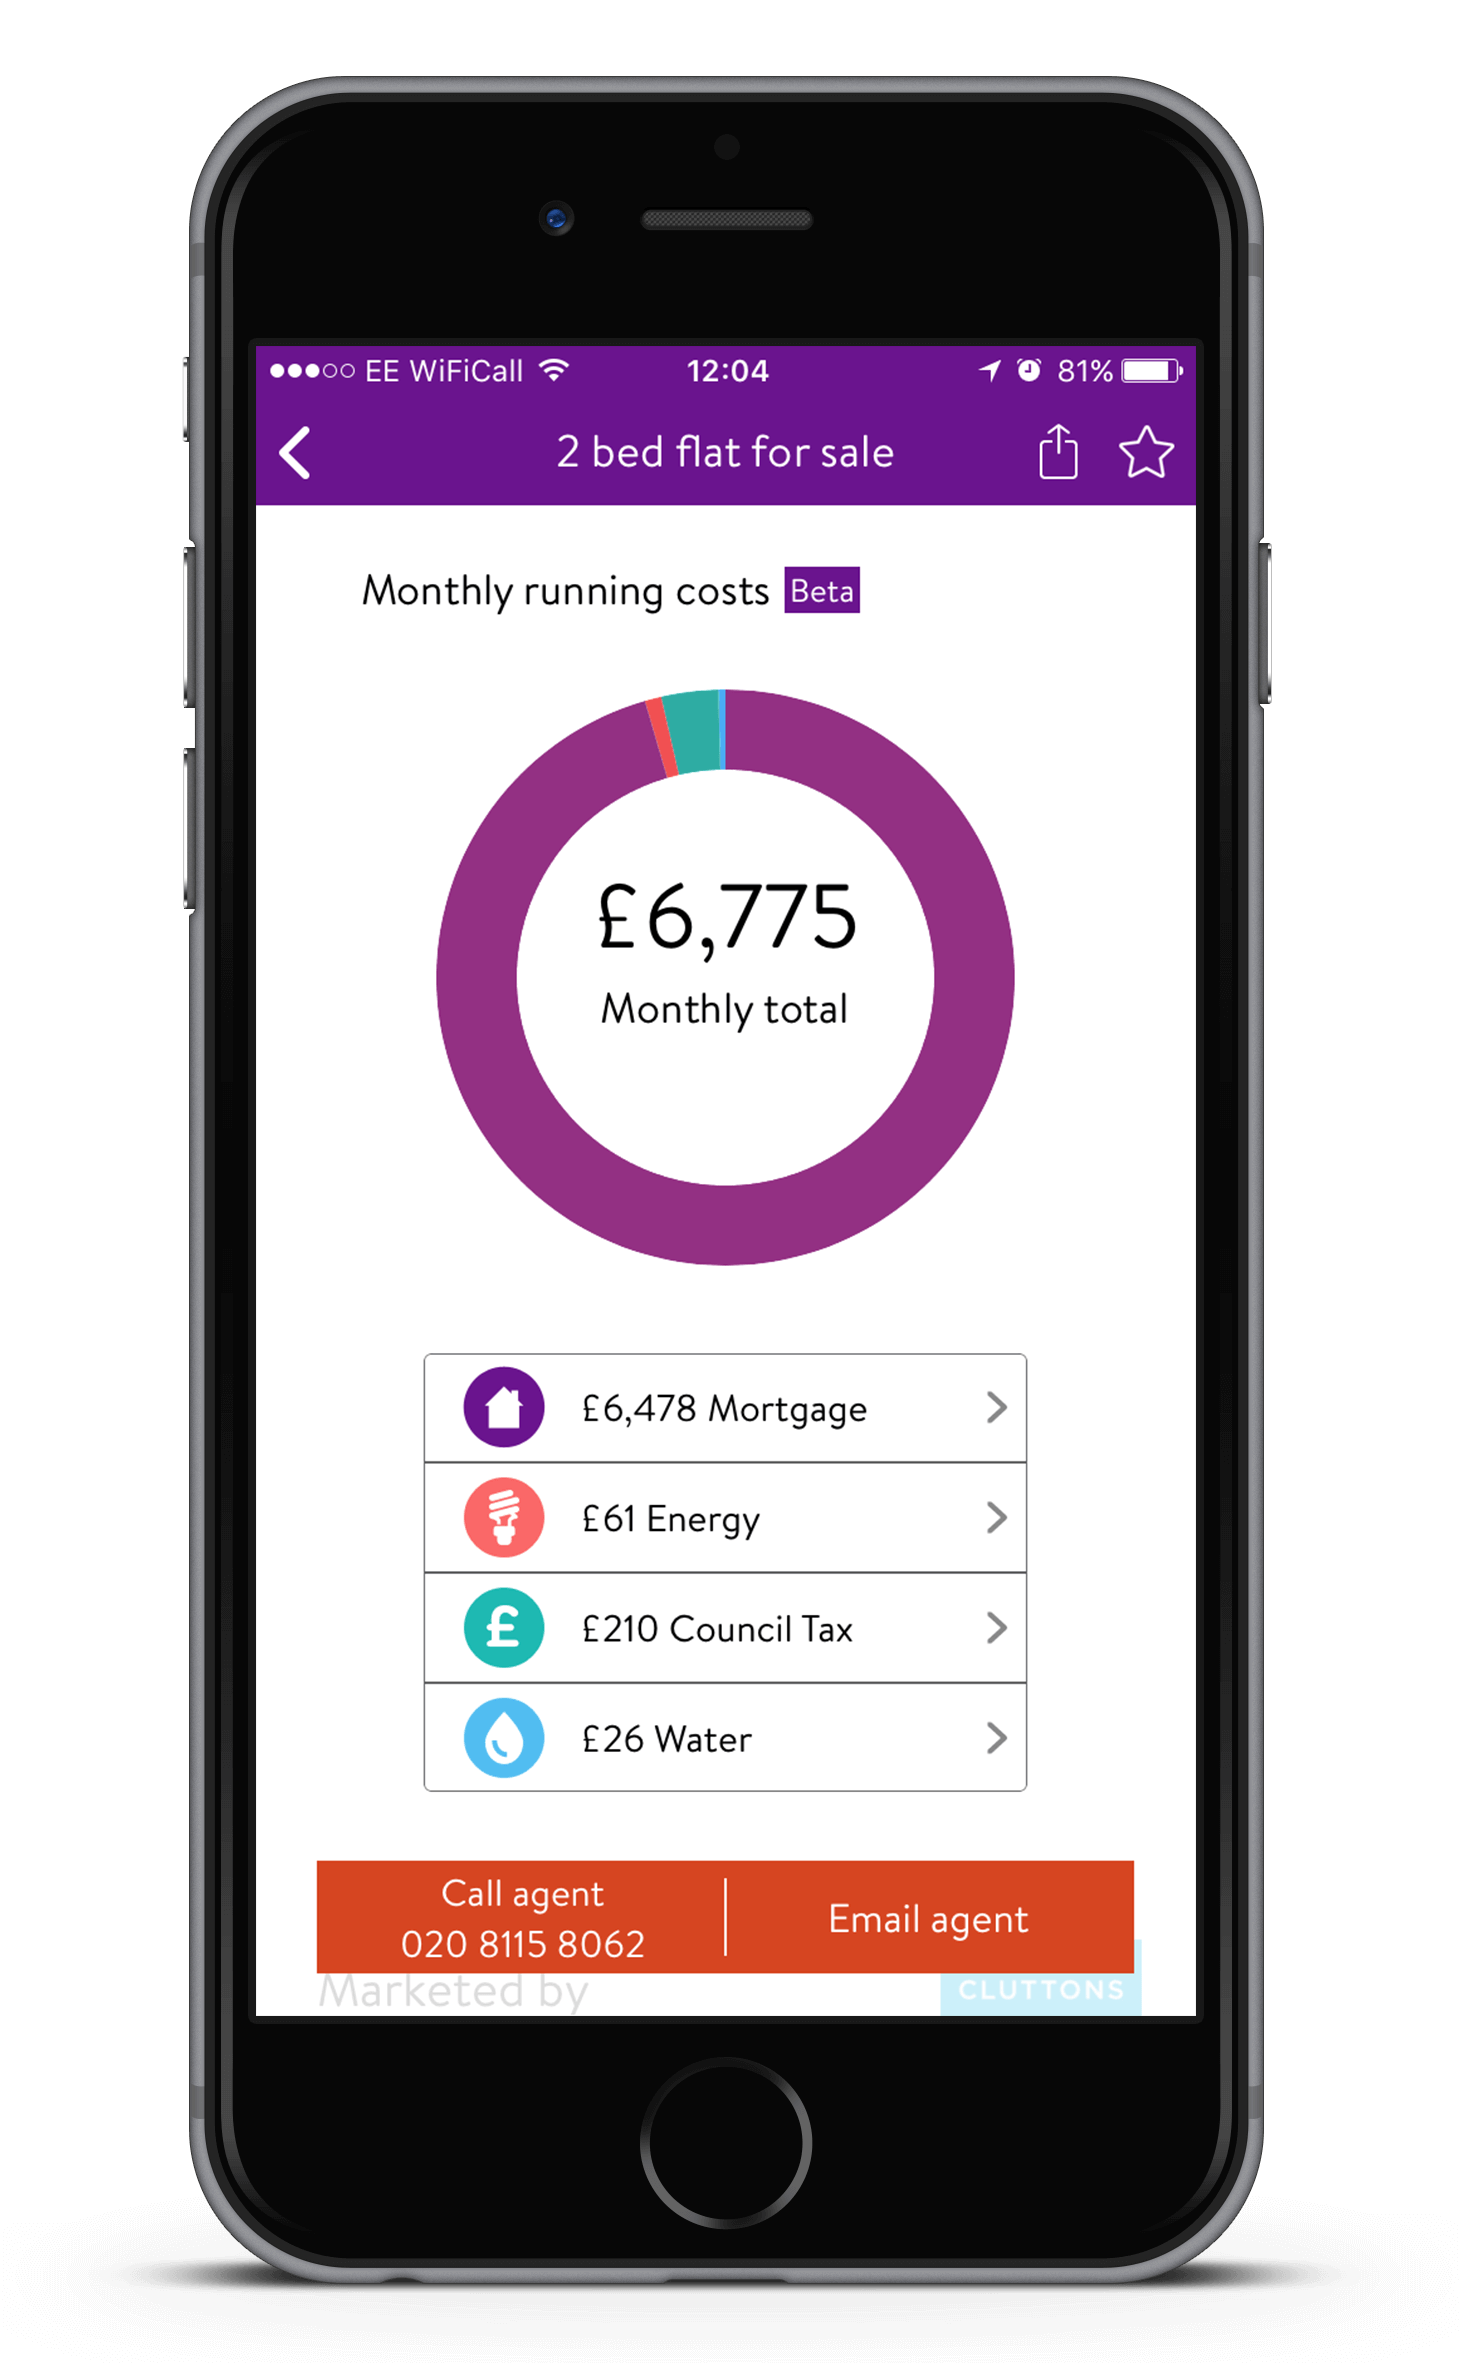 Zoopla iPhone App - Running costs